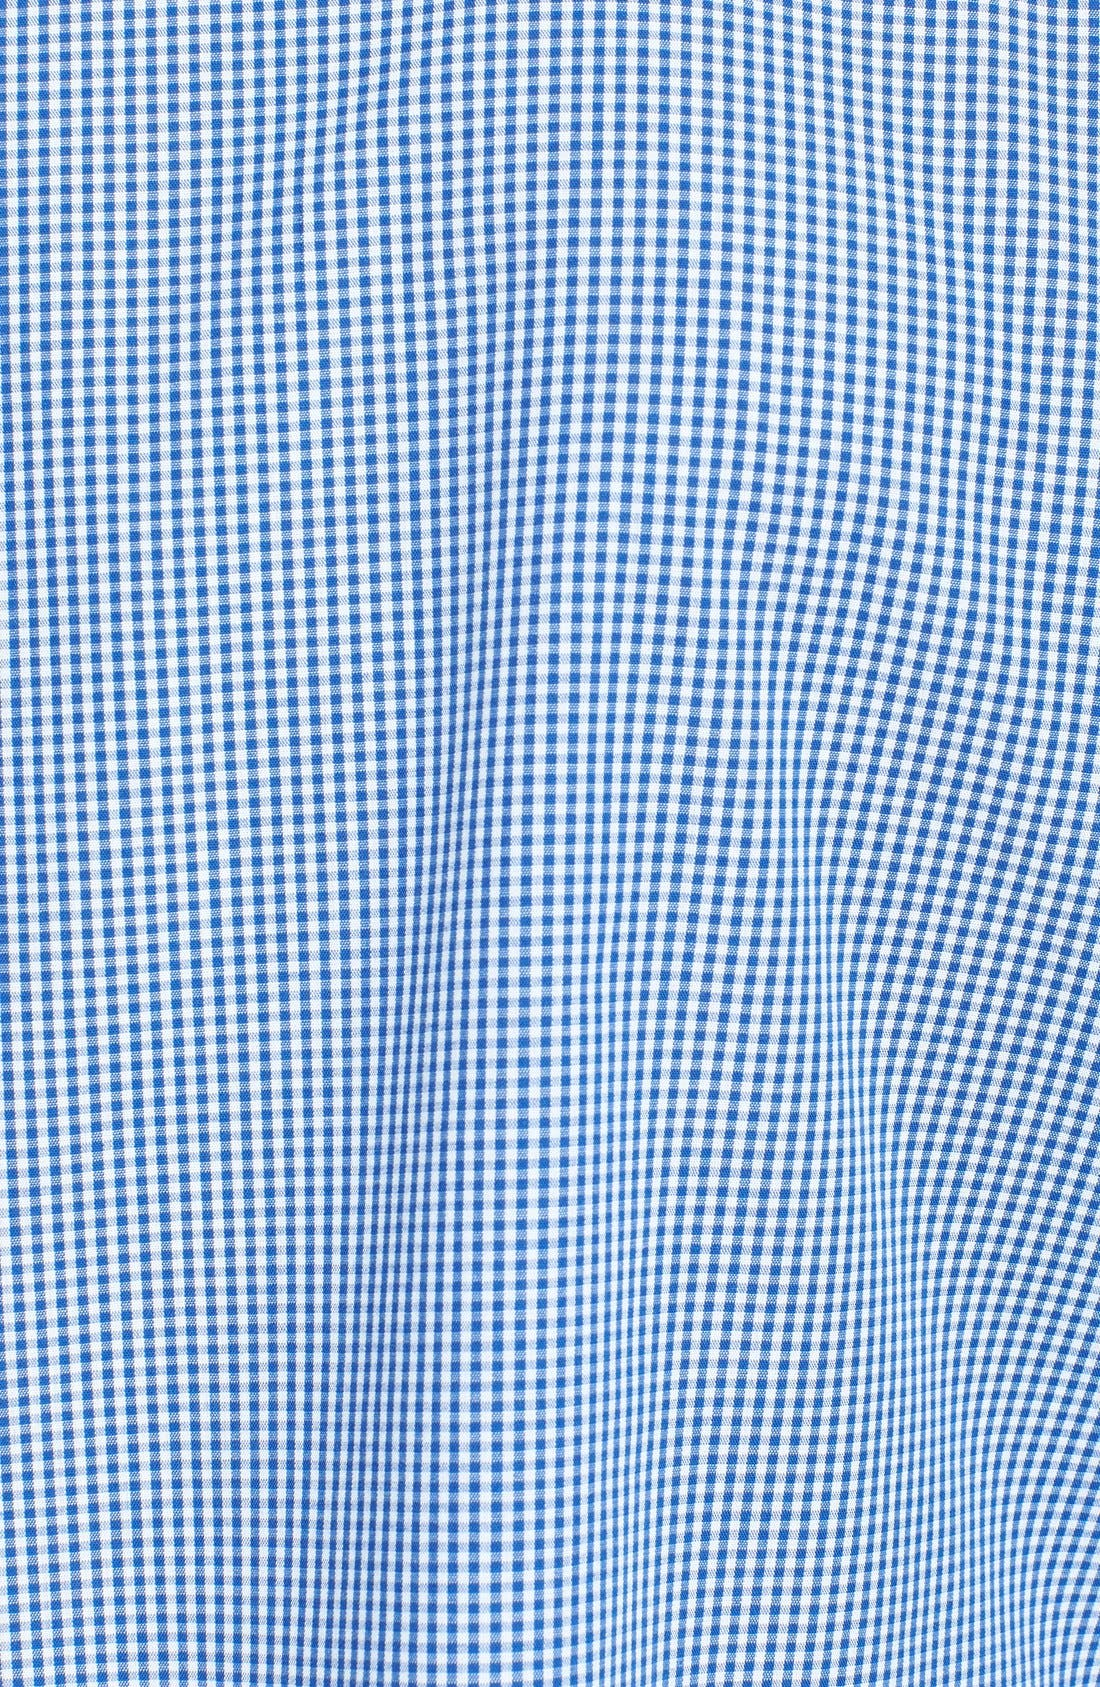 Alternate Image 3  - Topman Slim Fit Chambray Trimmed Gingham Shirt